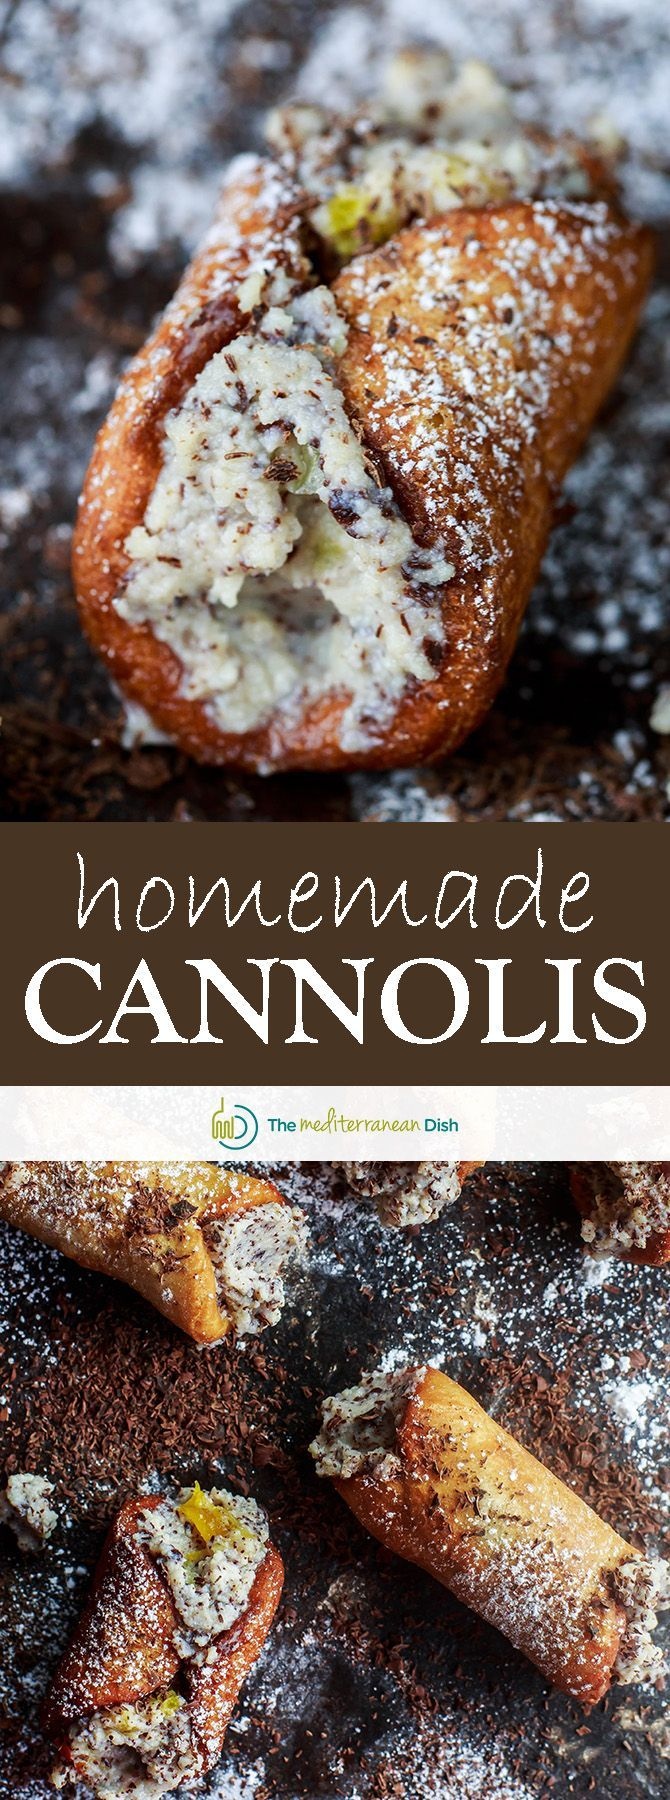 Cannoli Recipe (How to Make Cannolis) | The Mediterranean Dish. A foolproof recipe for Italian cannolis (shells and filling). Seriously dreamy, perfectly crisp shells filled with a ricotta and chocolate mixture. Tutorial with step-by-step photos included! See it today on TheMediterraneanDish.com